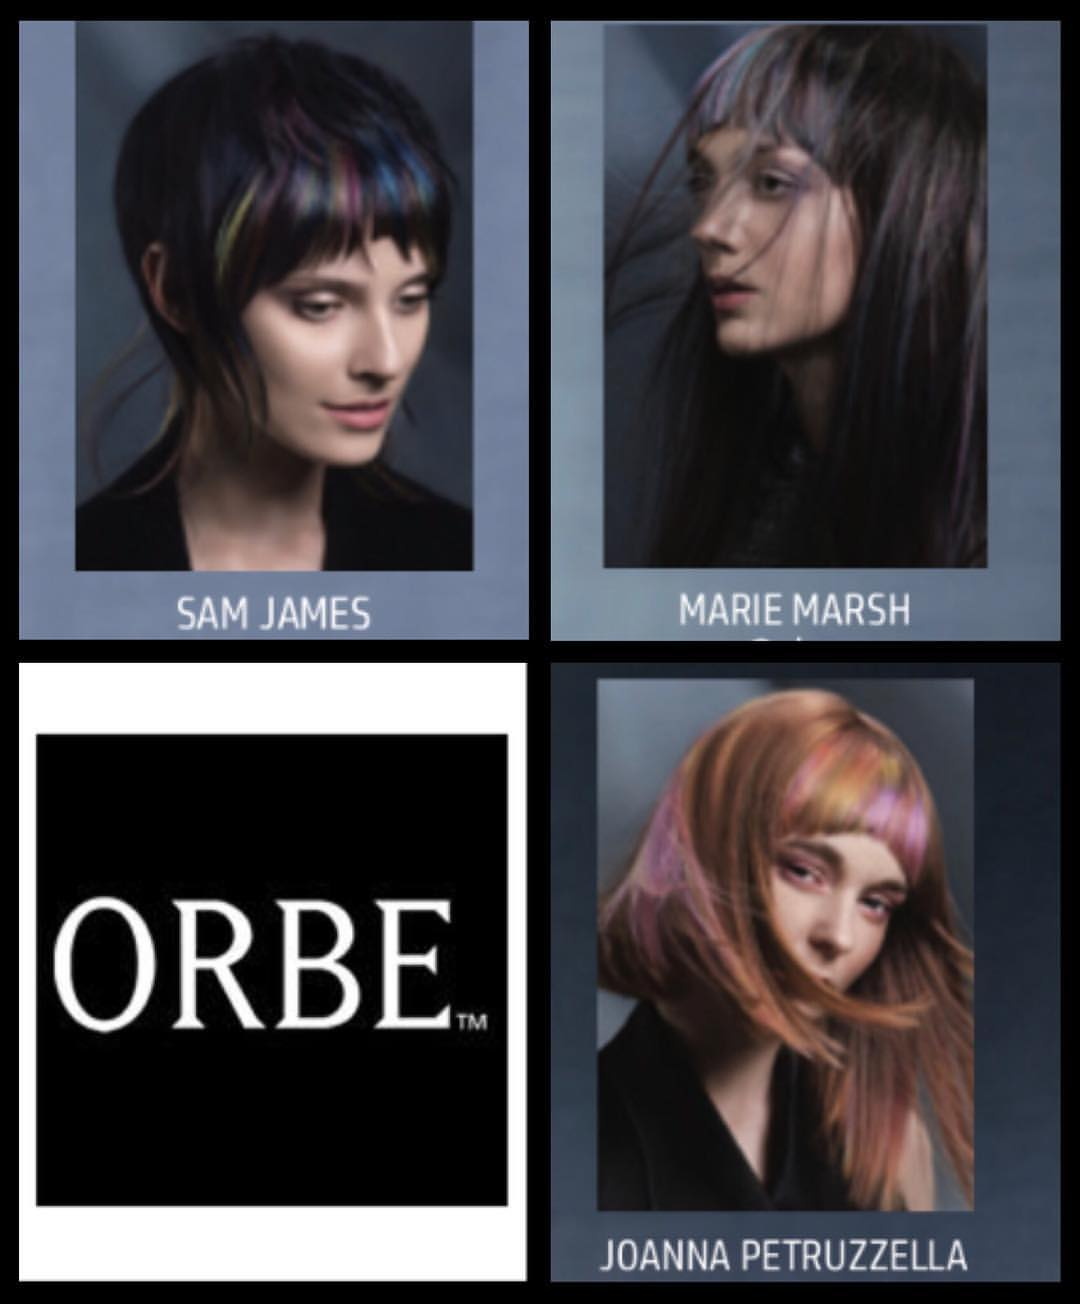 We are so excited to have 3 National Global Creative Finalists for Goldwell International Colour Zoom, Sam James, Marie Marsh and Joanna Petruzzella!